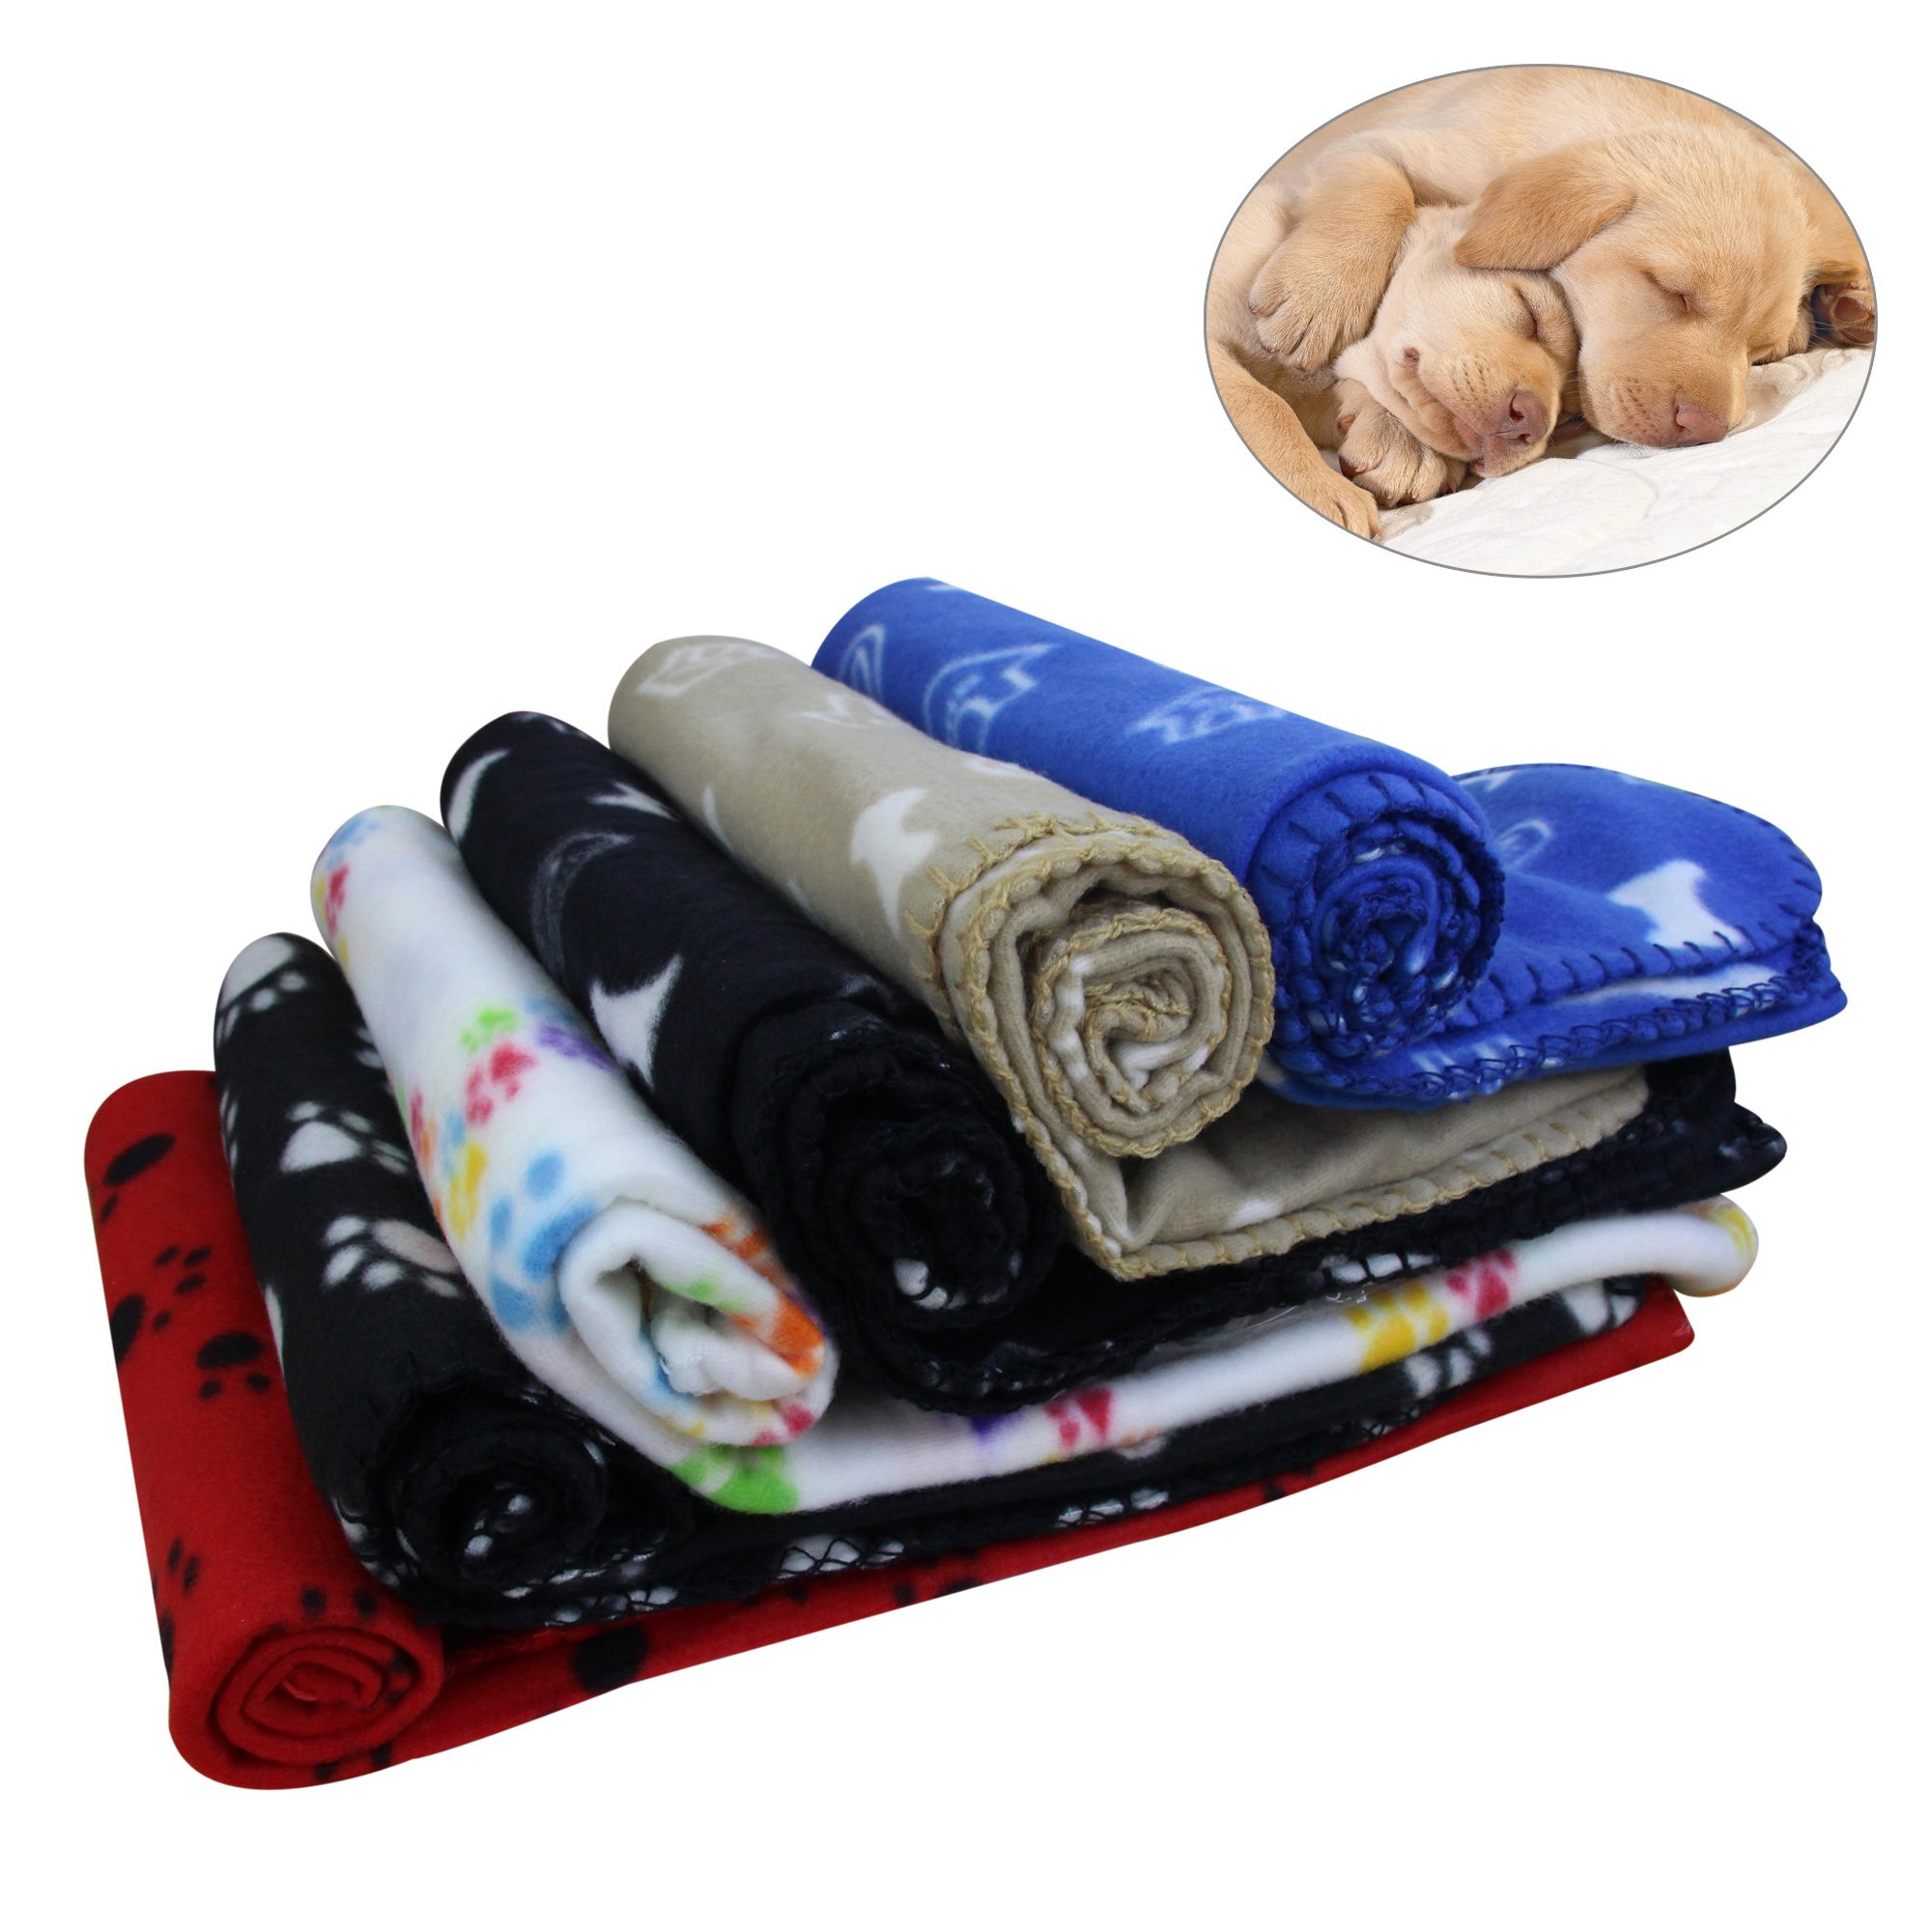 KYC 3 pack Puppy Blanket Cushion Dog Cat Fleece Blankets Pet Sleep Mat Pad Bed Cover with Paw Print Kitten Soft Warm Blanket for Animals (3 X Paw, 40in 28in)